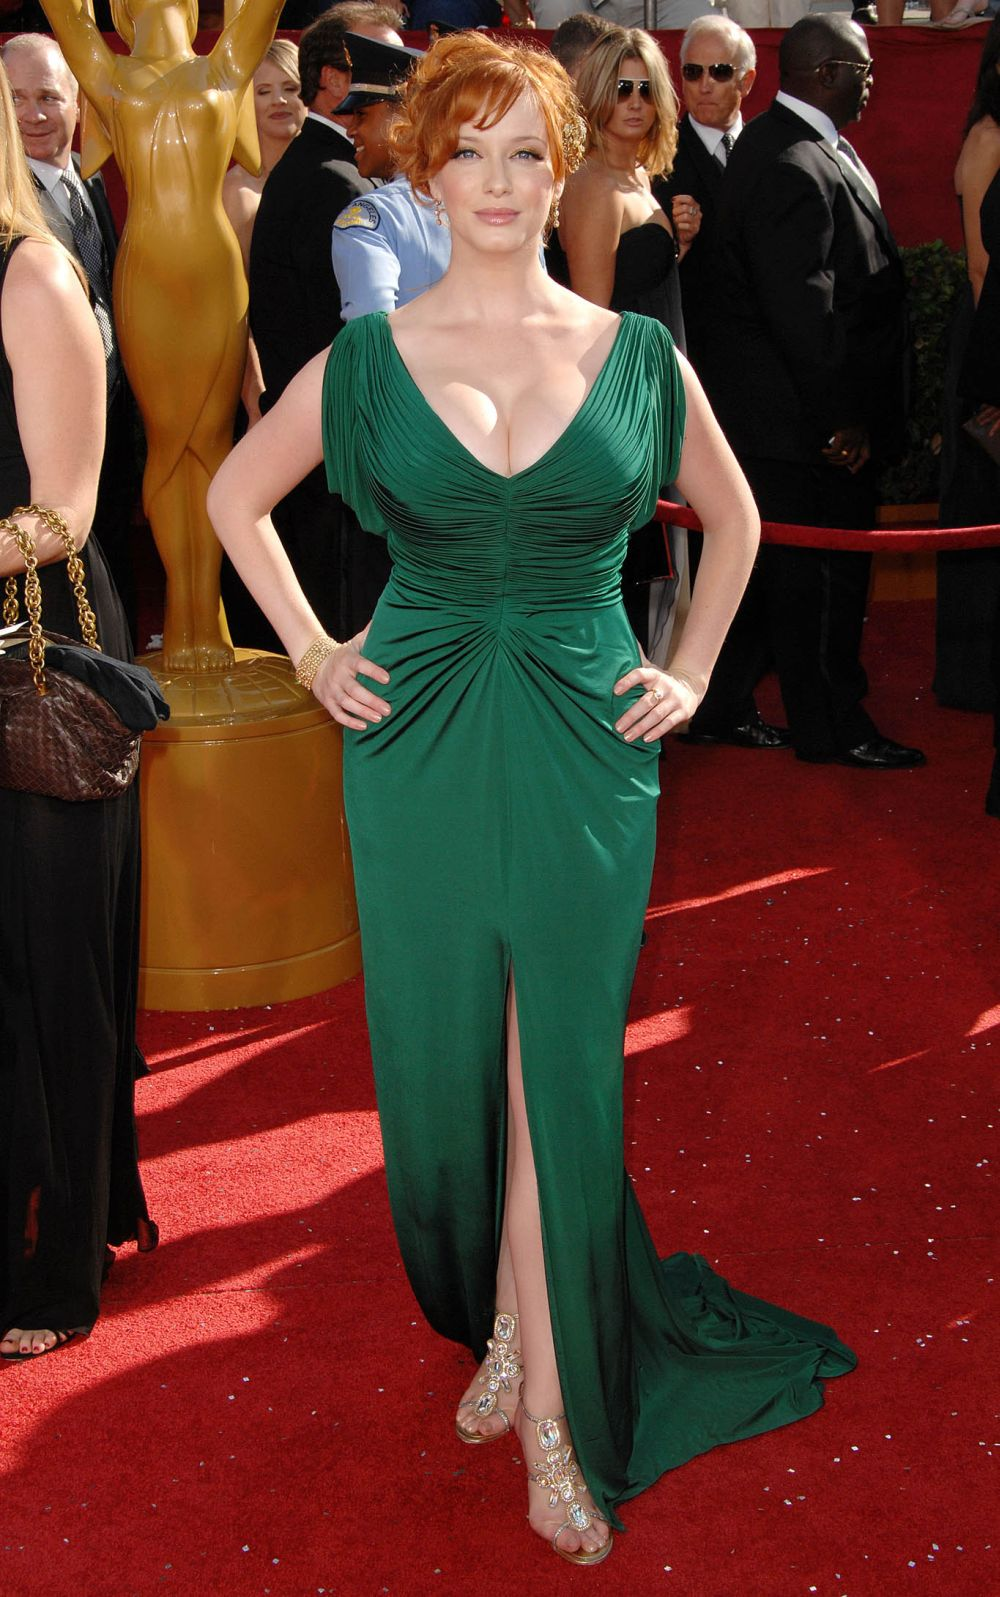 comment boos sized skinny arms neck curves sized acting Christina Hendricks